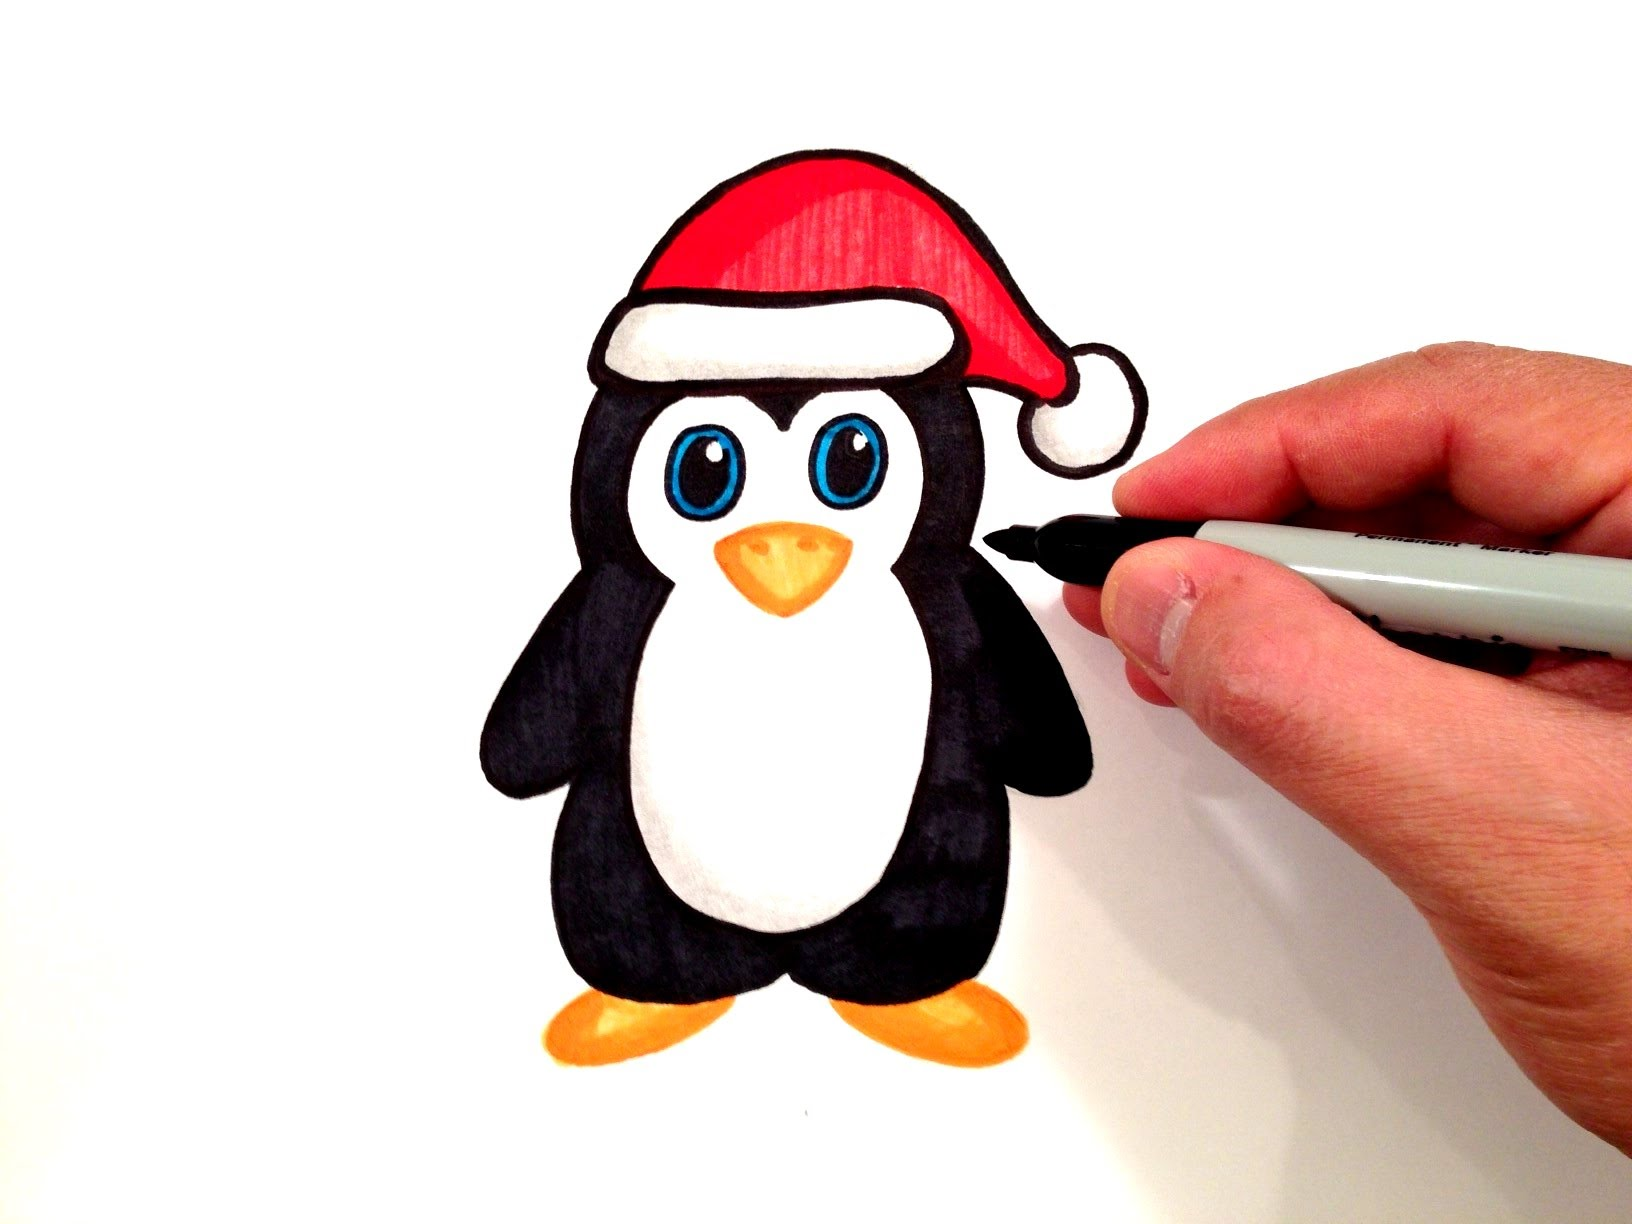 Line Drawing Penguin : Penguin drawing pictures at getdrawings.com free for personal use